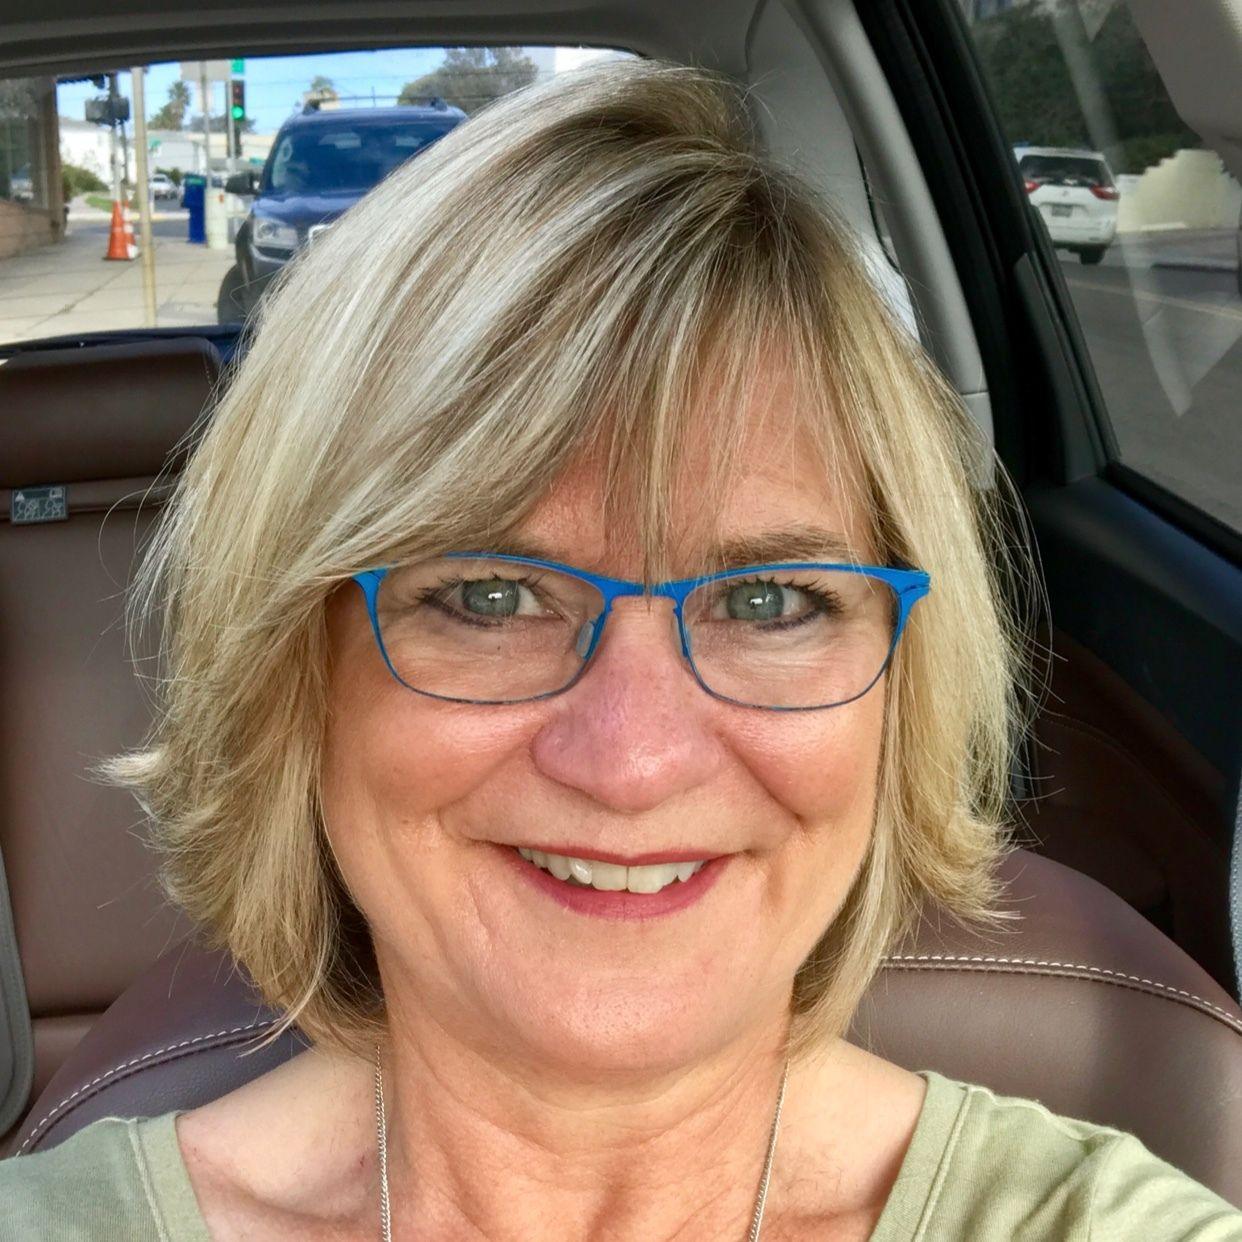 meet east bethany singles Bethany woodard, march 14 home news best happy hour destinations for singles in phoenix this fun atmosphere is the perfect place to meet someone.